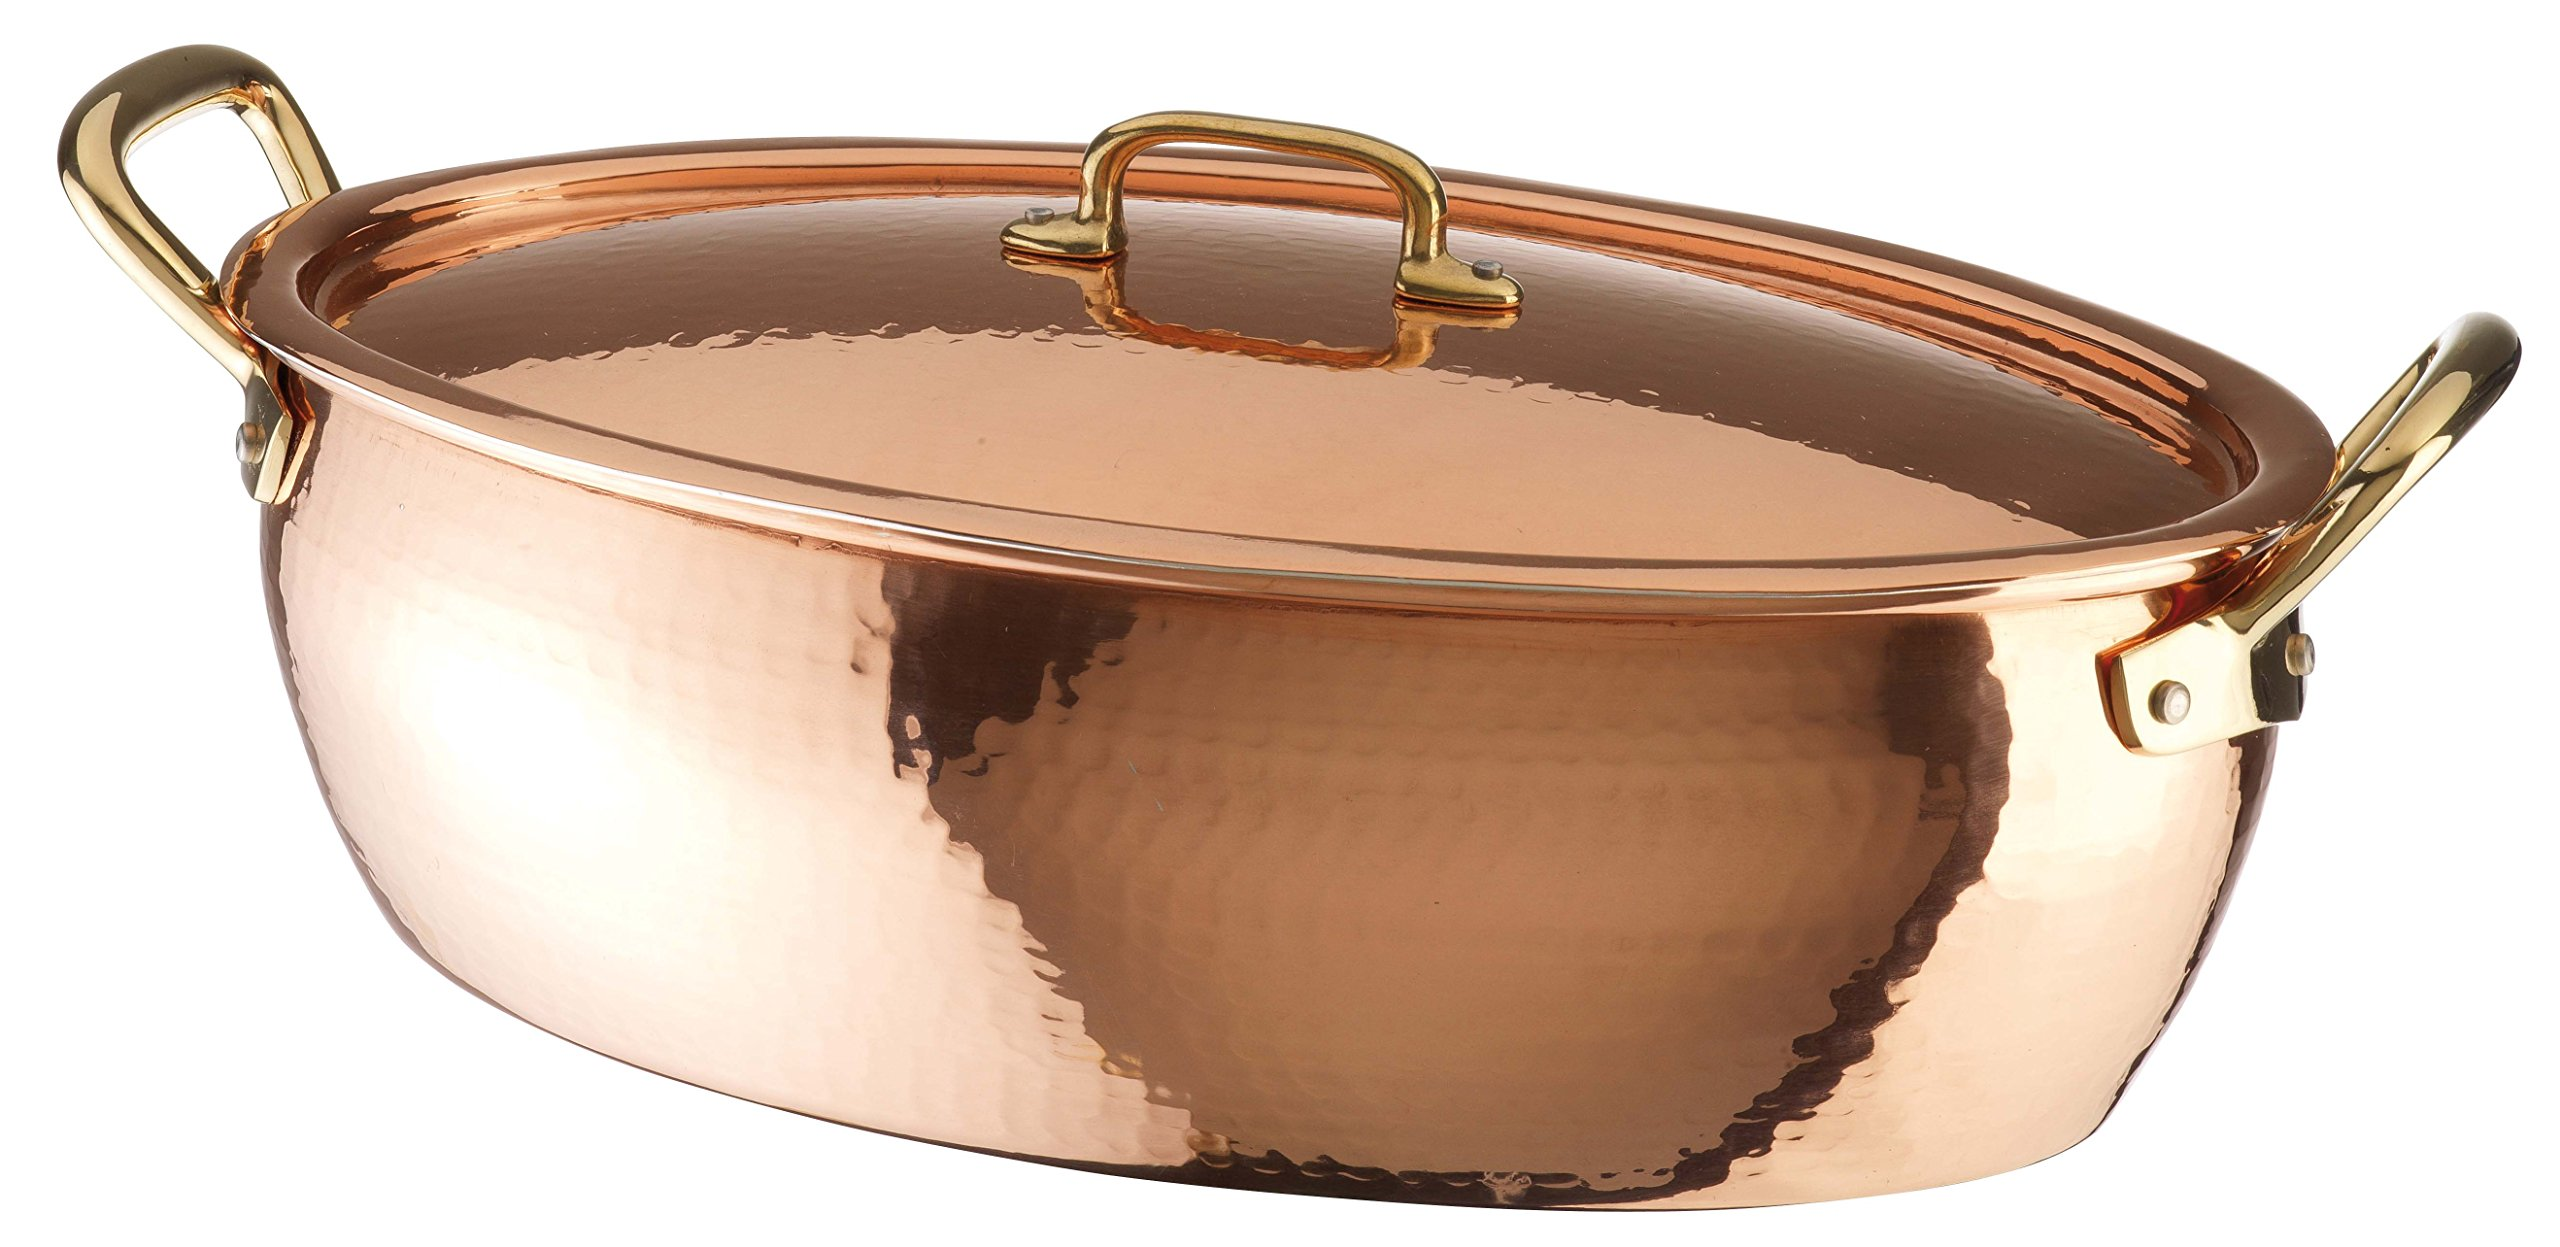 Paderno World Cuisine Deep Oval Copper-Tin Roasting Pan with Copper Lid